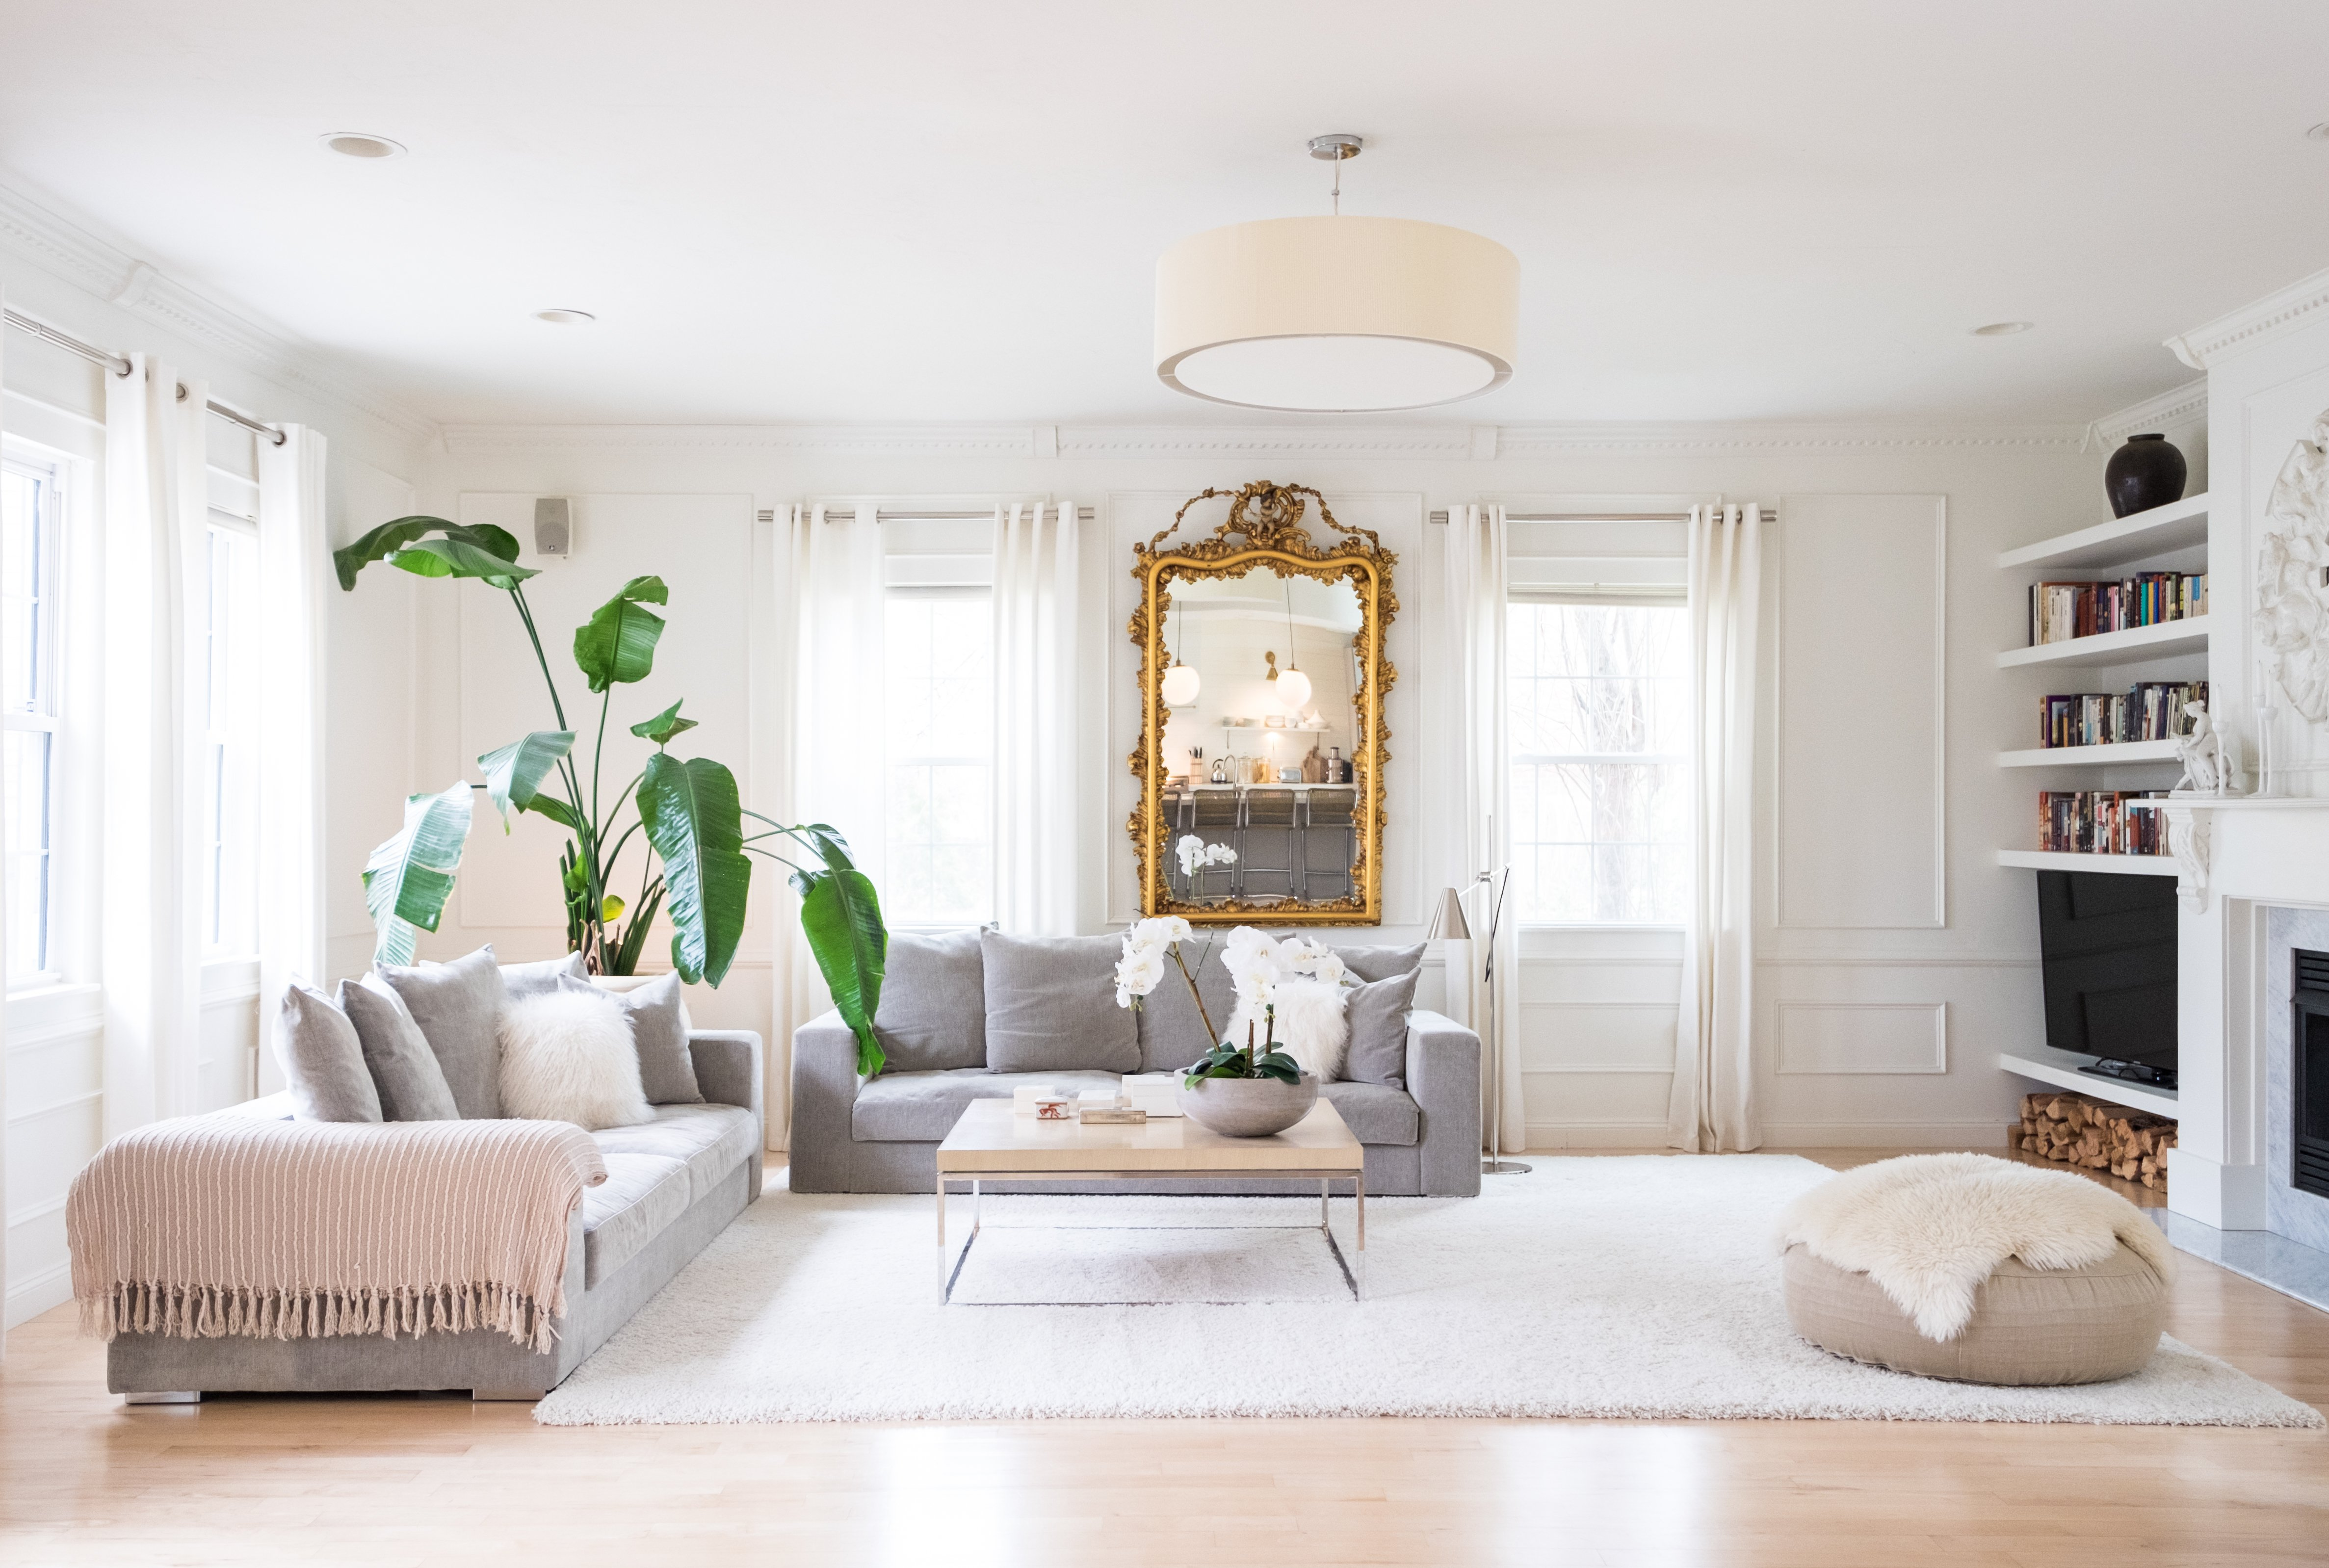 14 Best White Paint Colors For Walls According To Designers Apartment Therapy,Worst Blizzard Ever Recorded